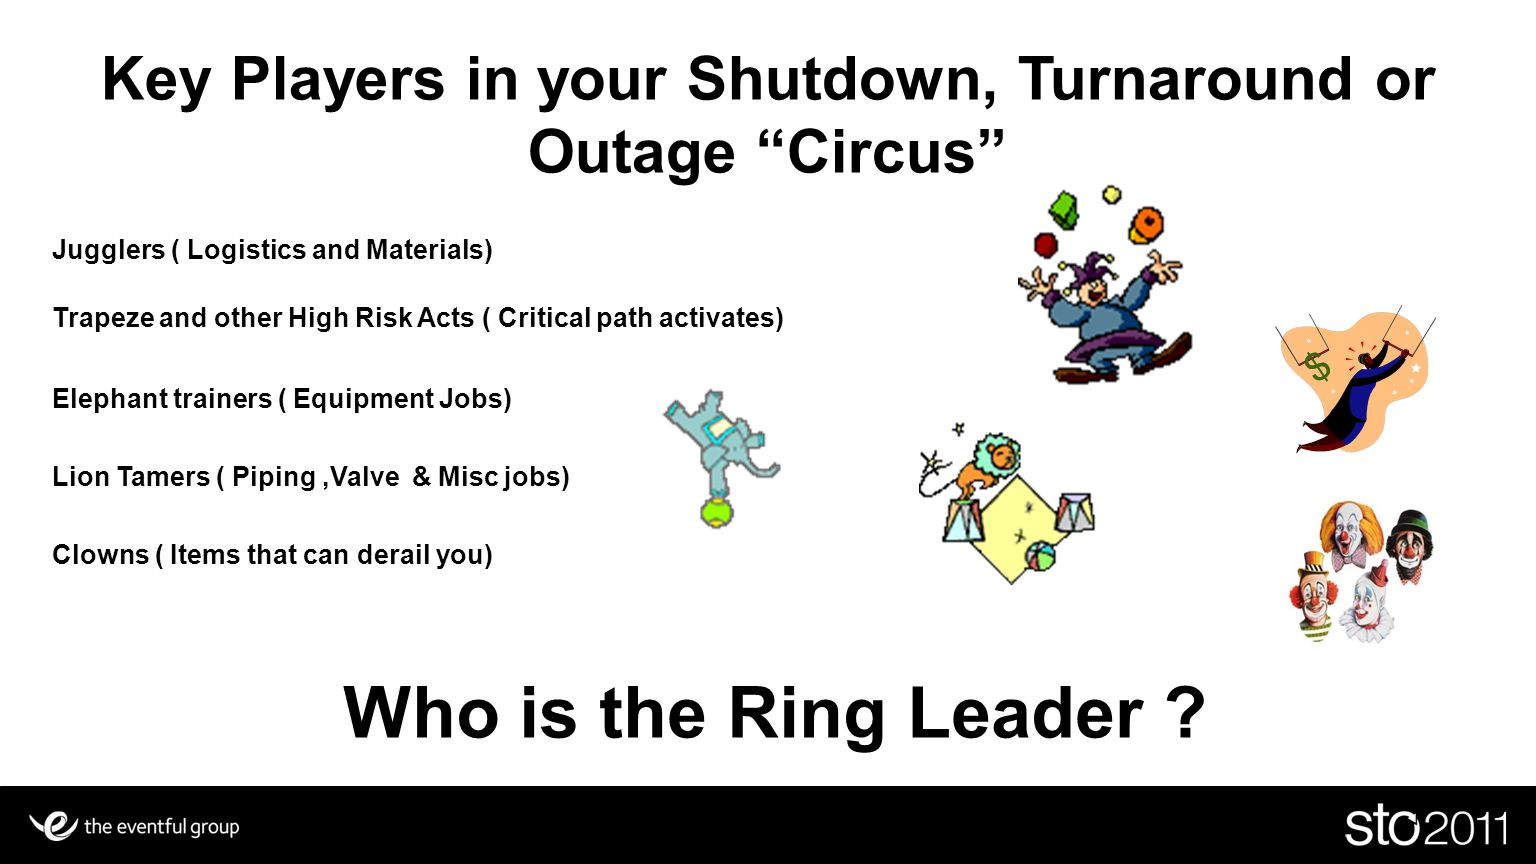 Key Players in your Shutdown, Turnaround or Outage Circus